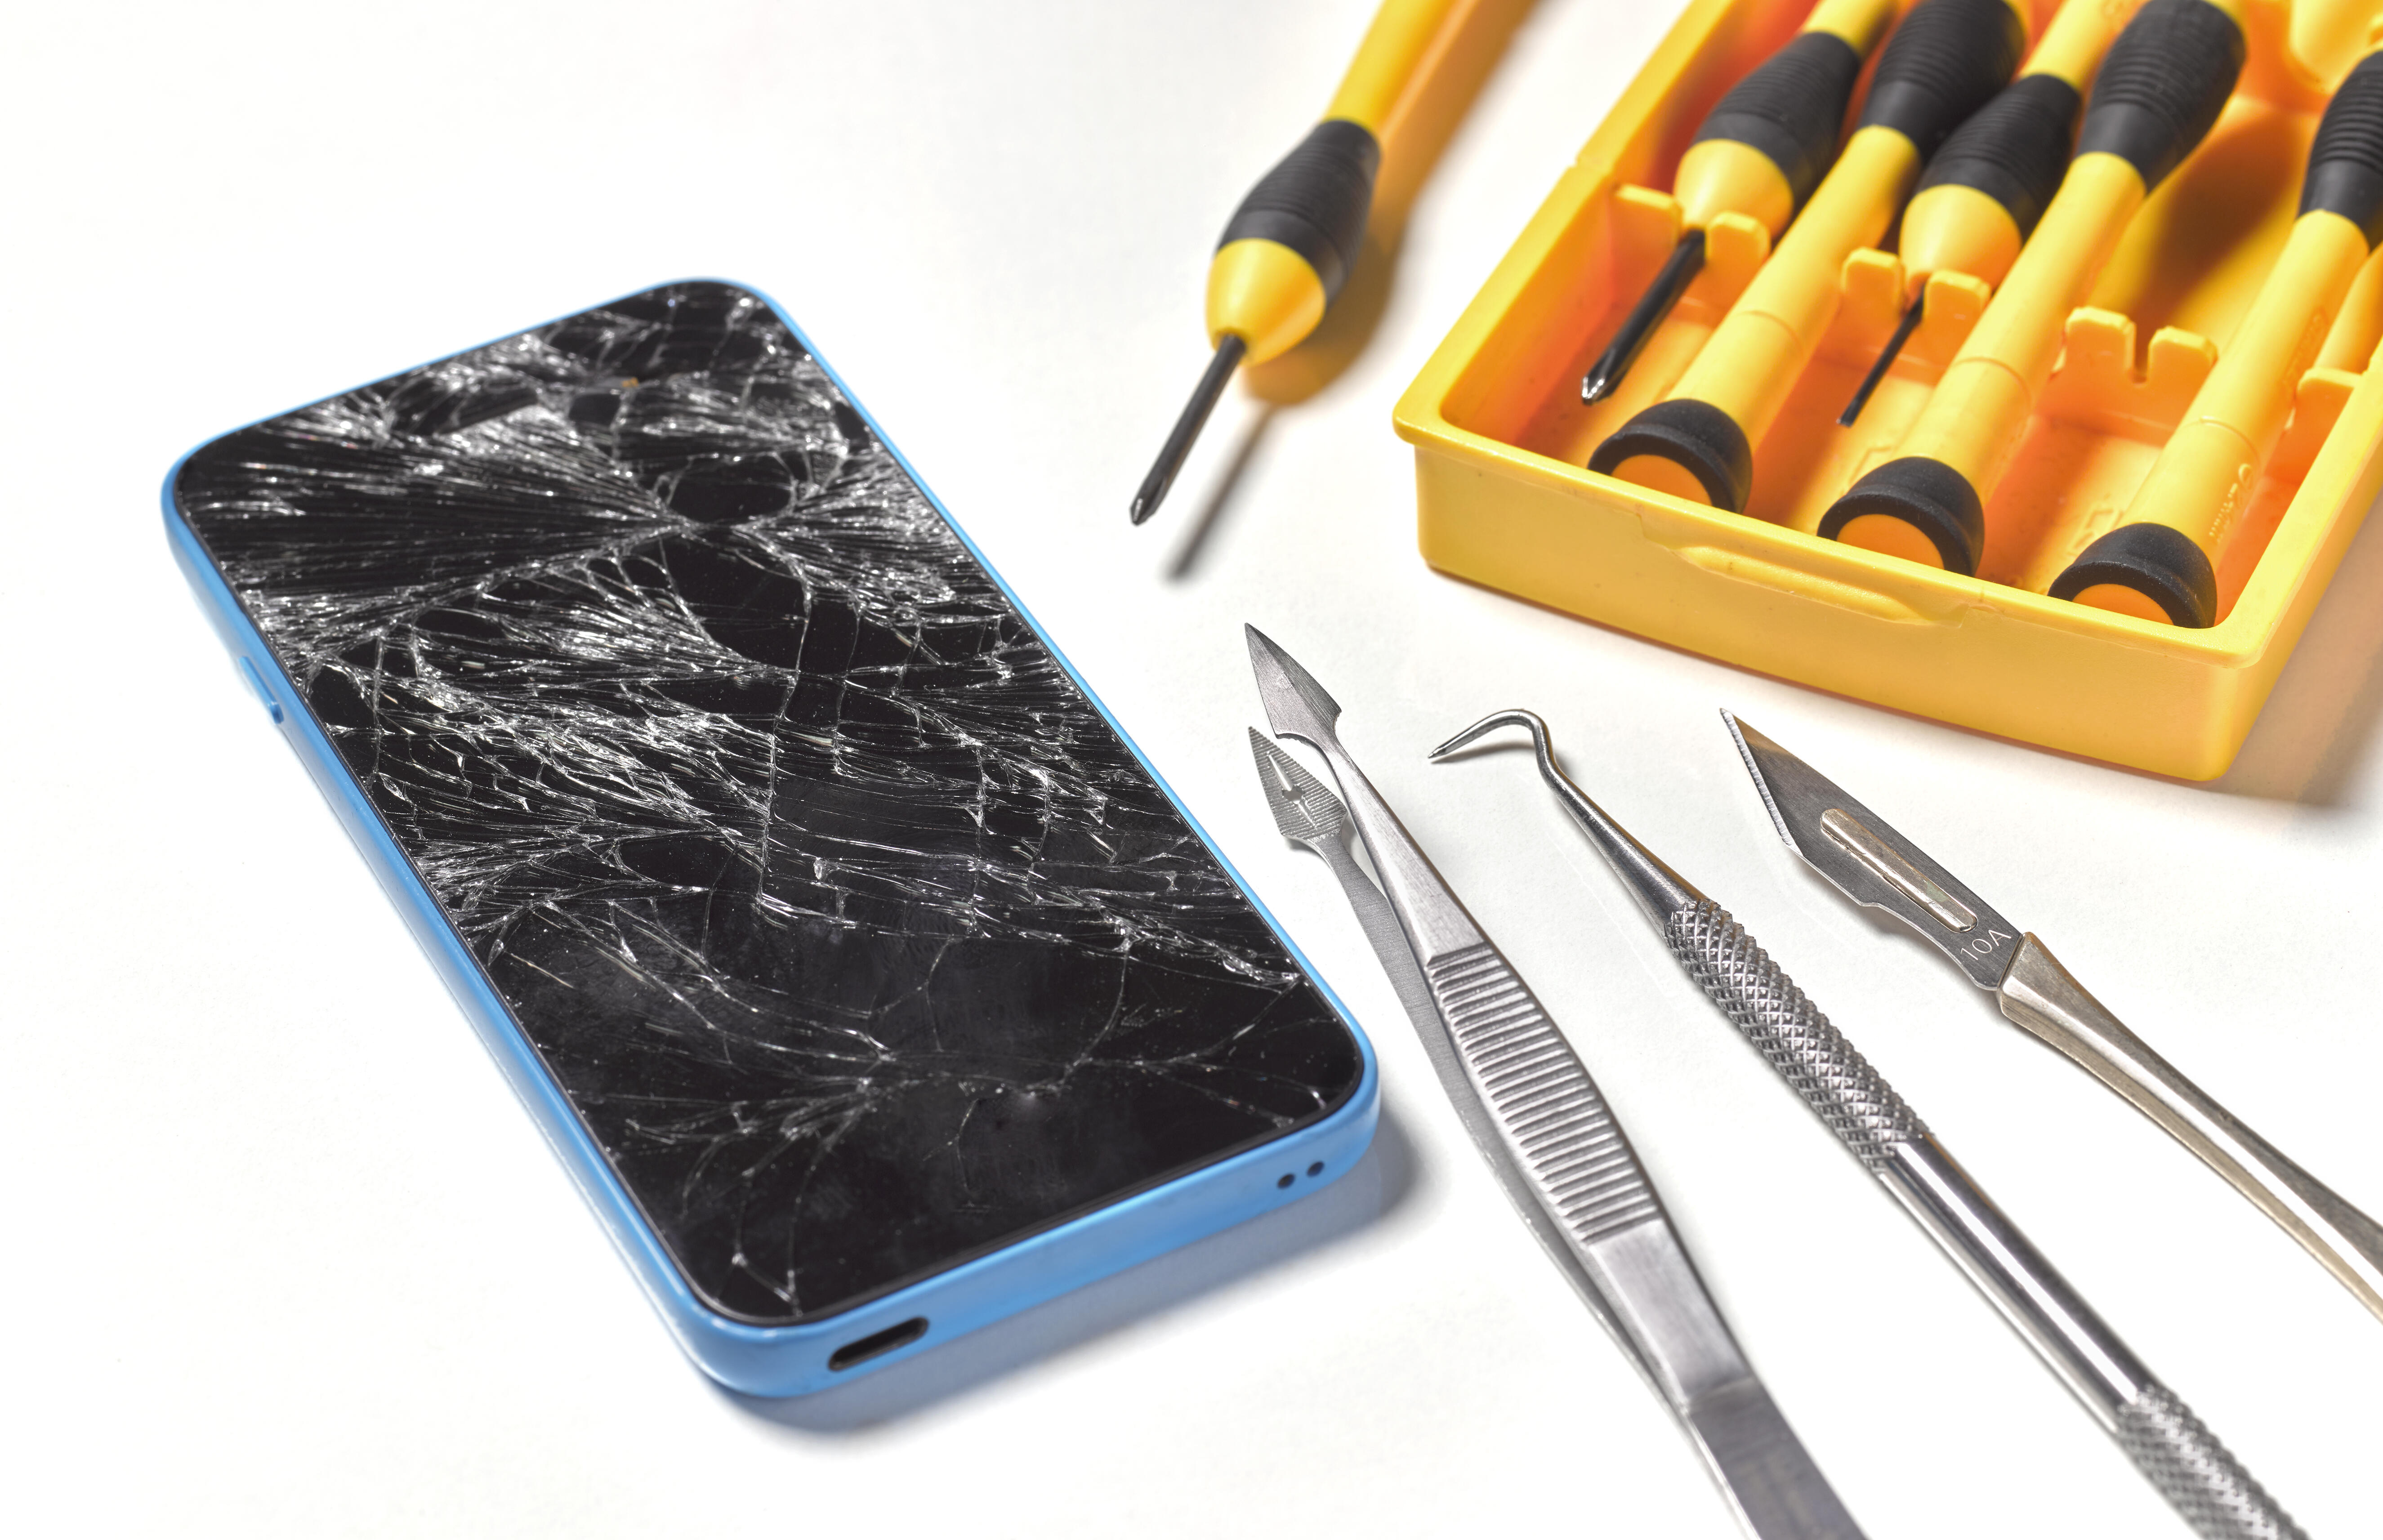 Phone with shattered screen, and a set of tools.